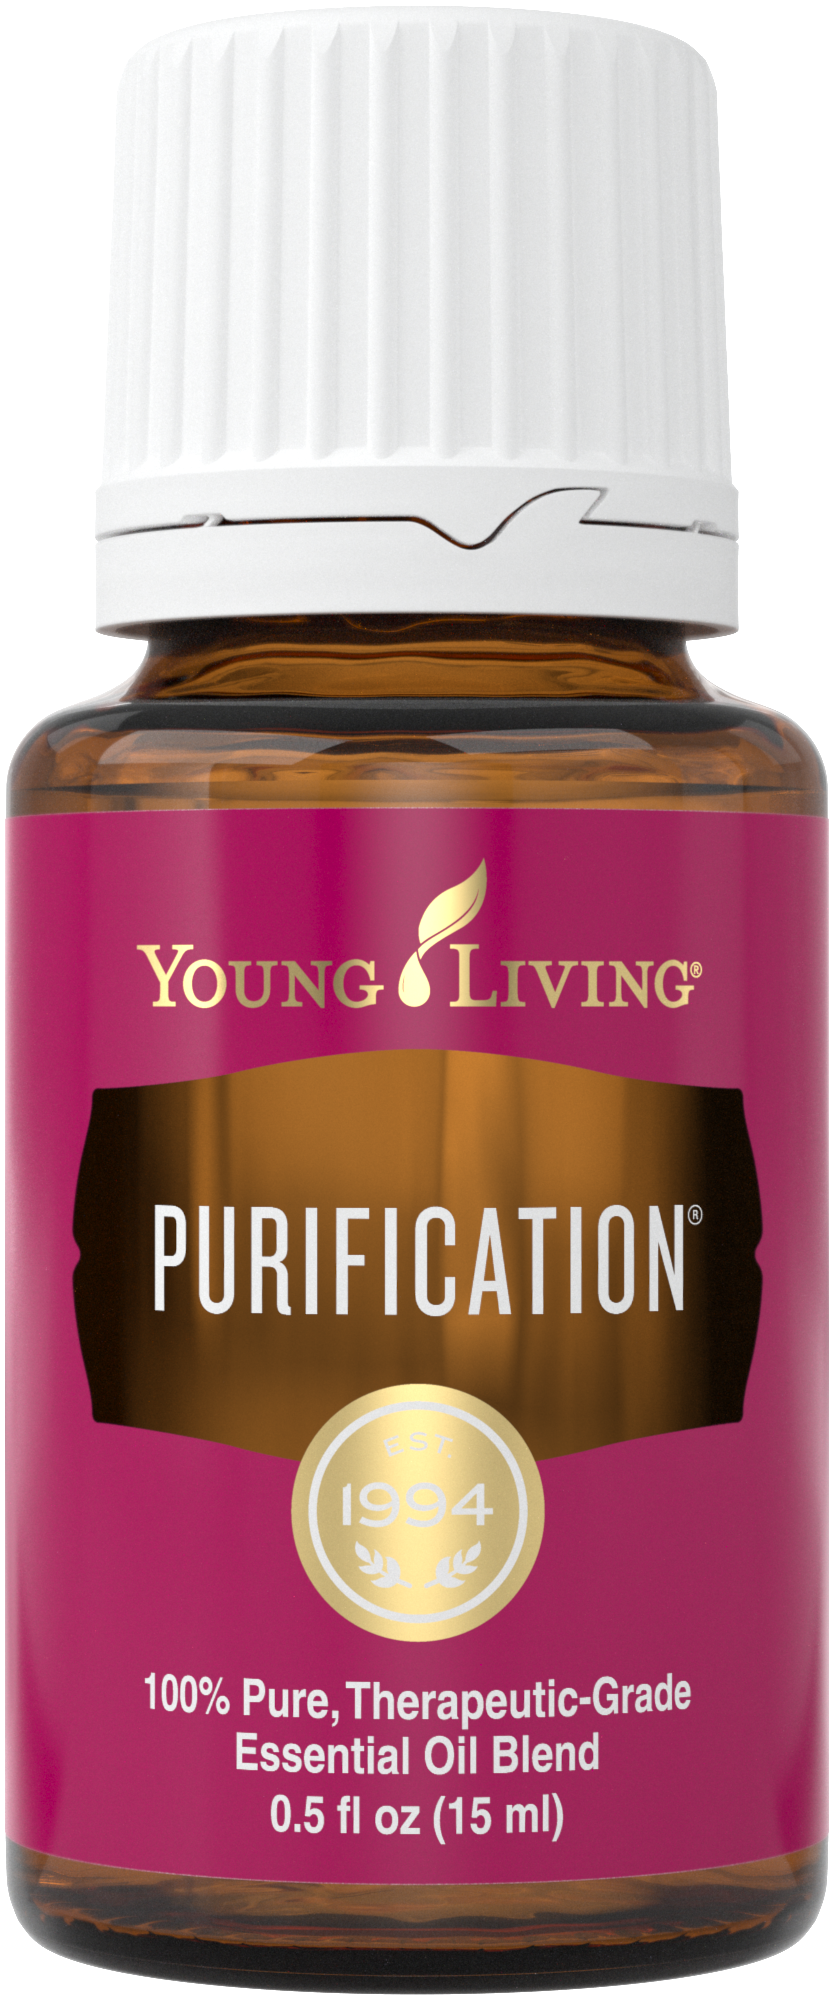 Purification Essential Oil by Young Living